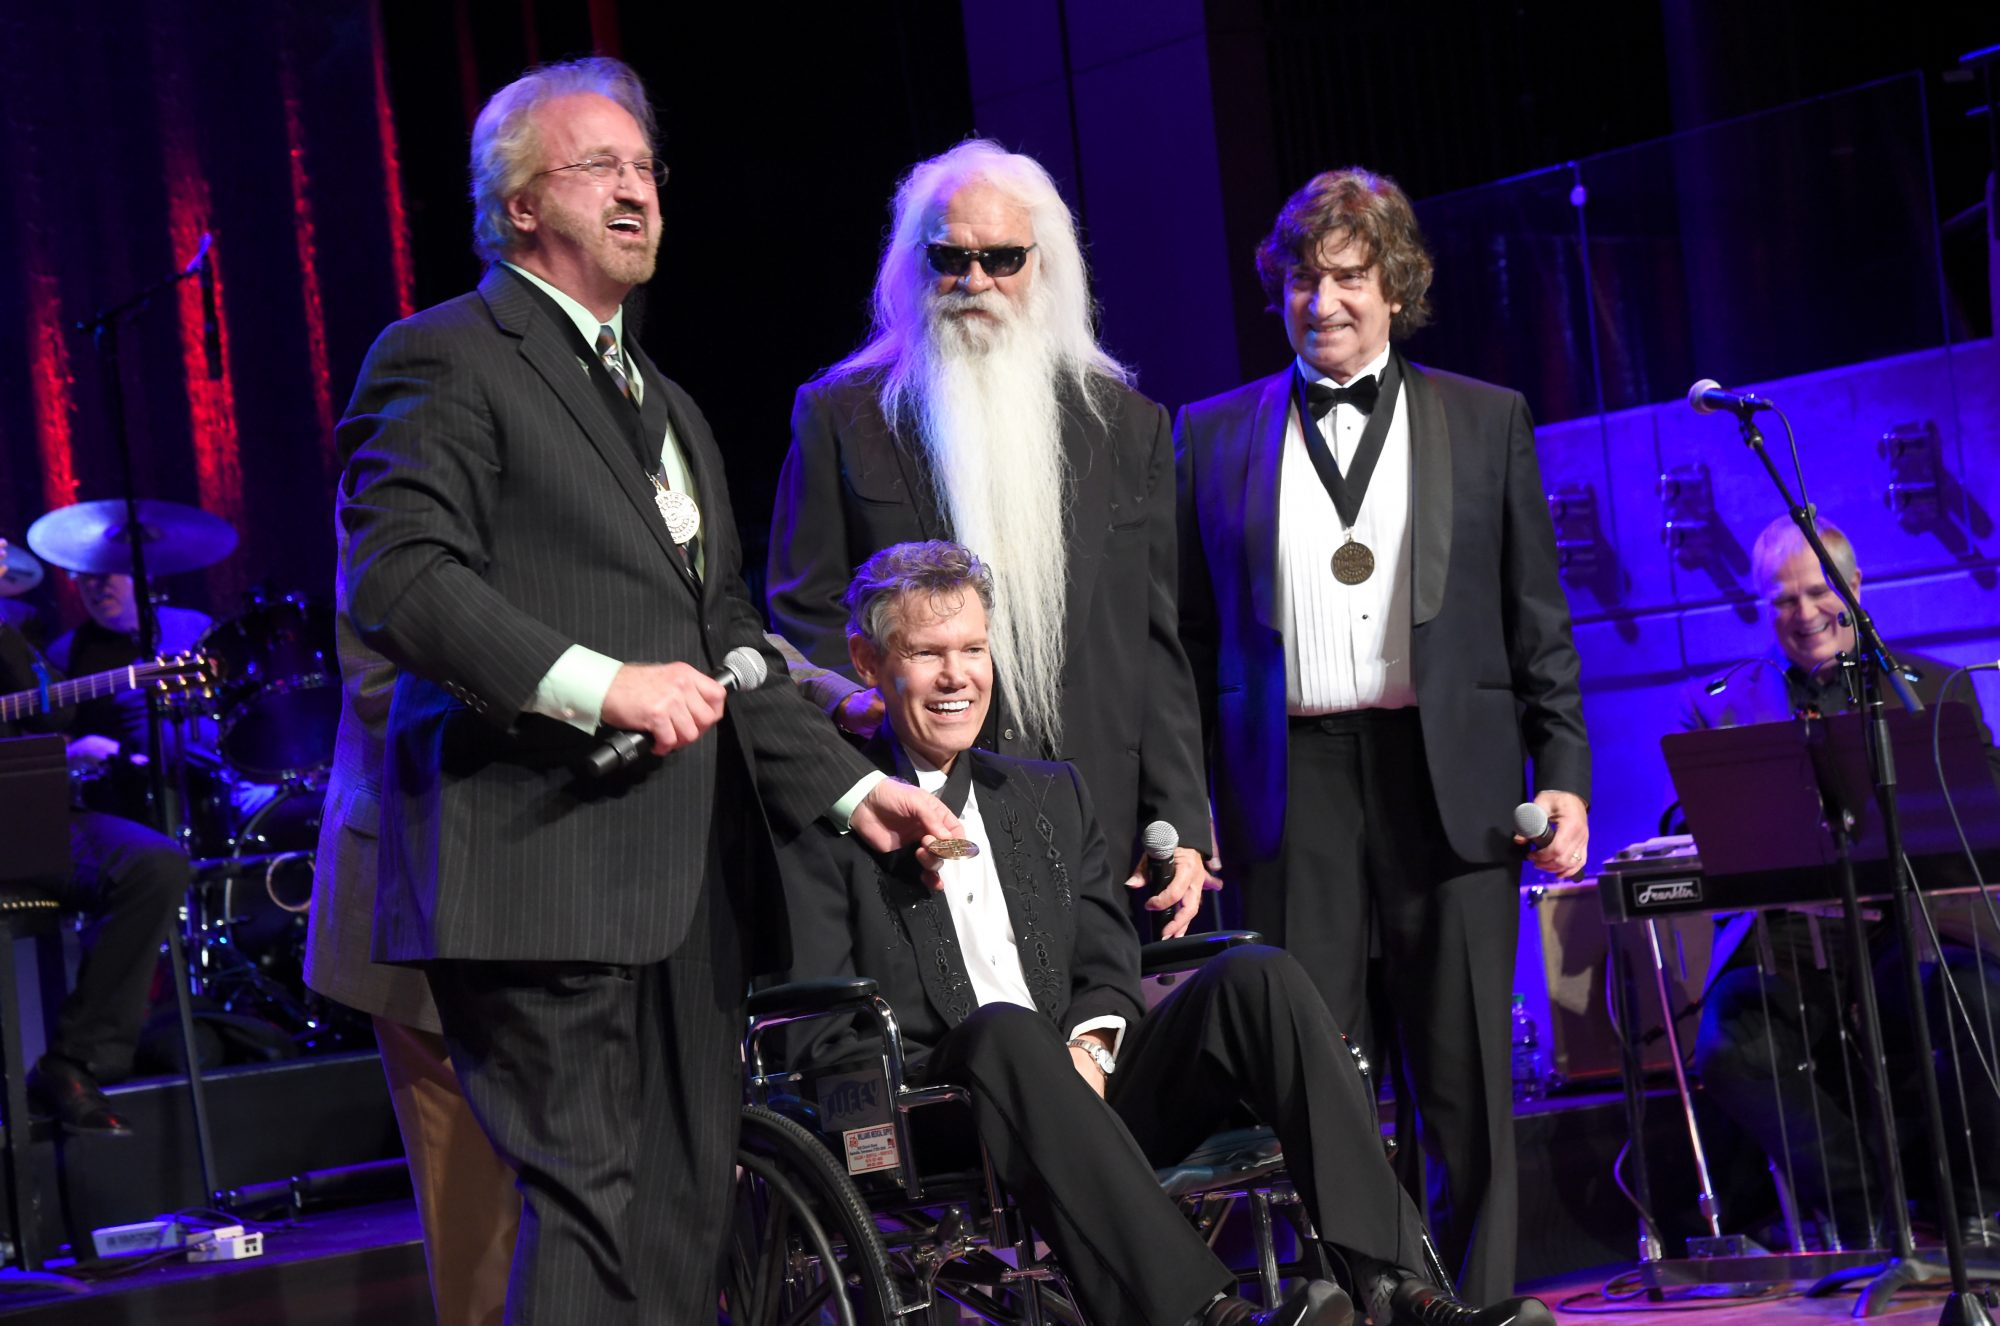 NASHVILLE, TN - OCTOBER 16:  Duane Allen, William Lee Golden, and Richard Sterban of The Oak Ridge Boys and Charley Pride perform onstage with inductee Randy Travis during the 2016 Medallion Ceremony at Country Music Hall of Fame and Museum on October 16, 2016 in Nashville, Tennessee.  (Photo by Rick Diamond/Getty Images for Country Music Hall of Fame & Museum)